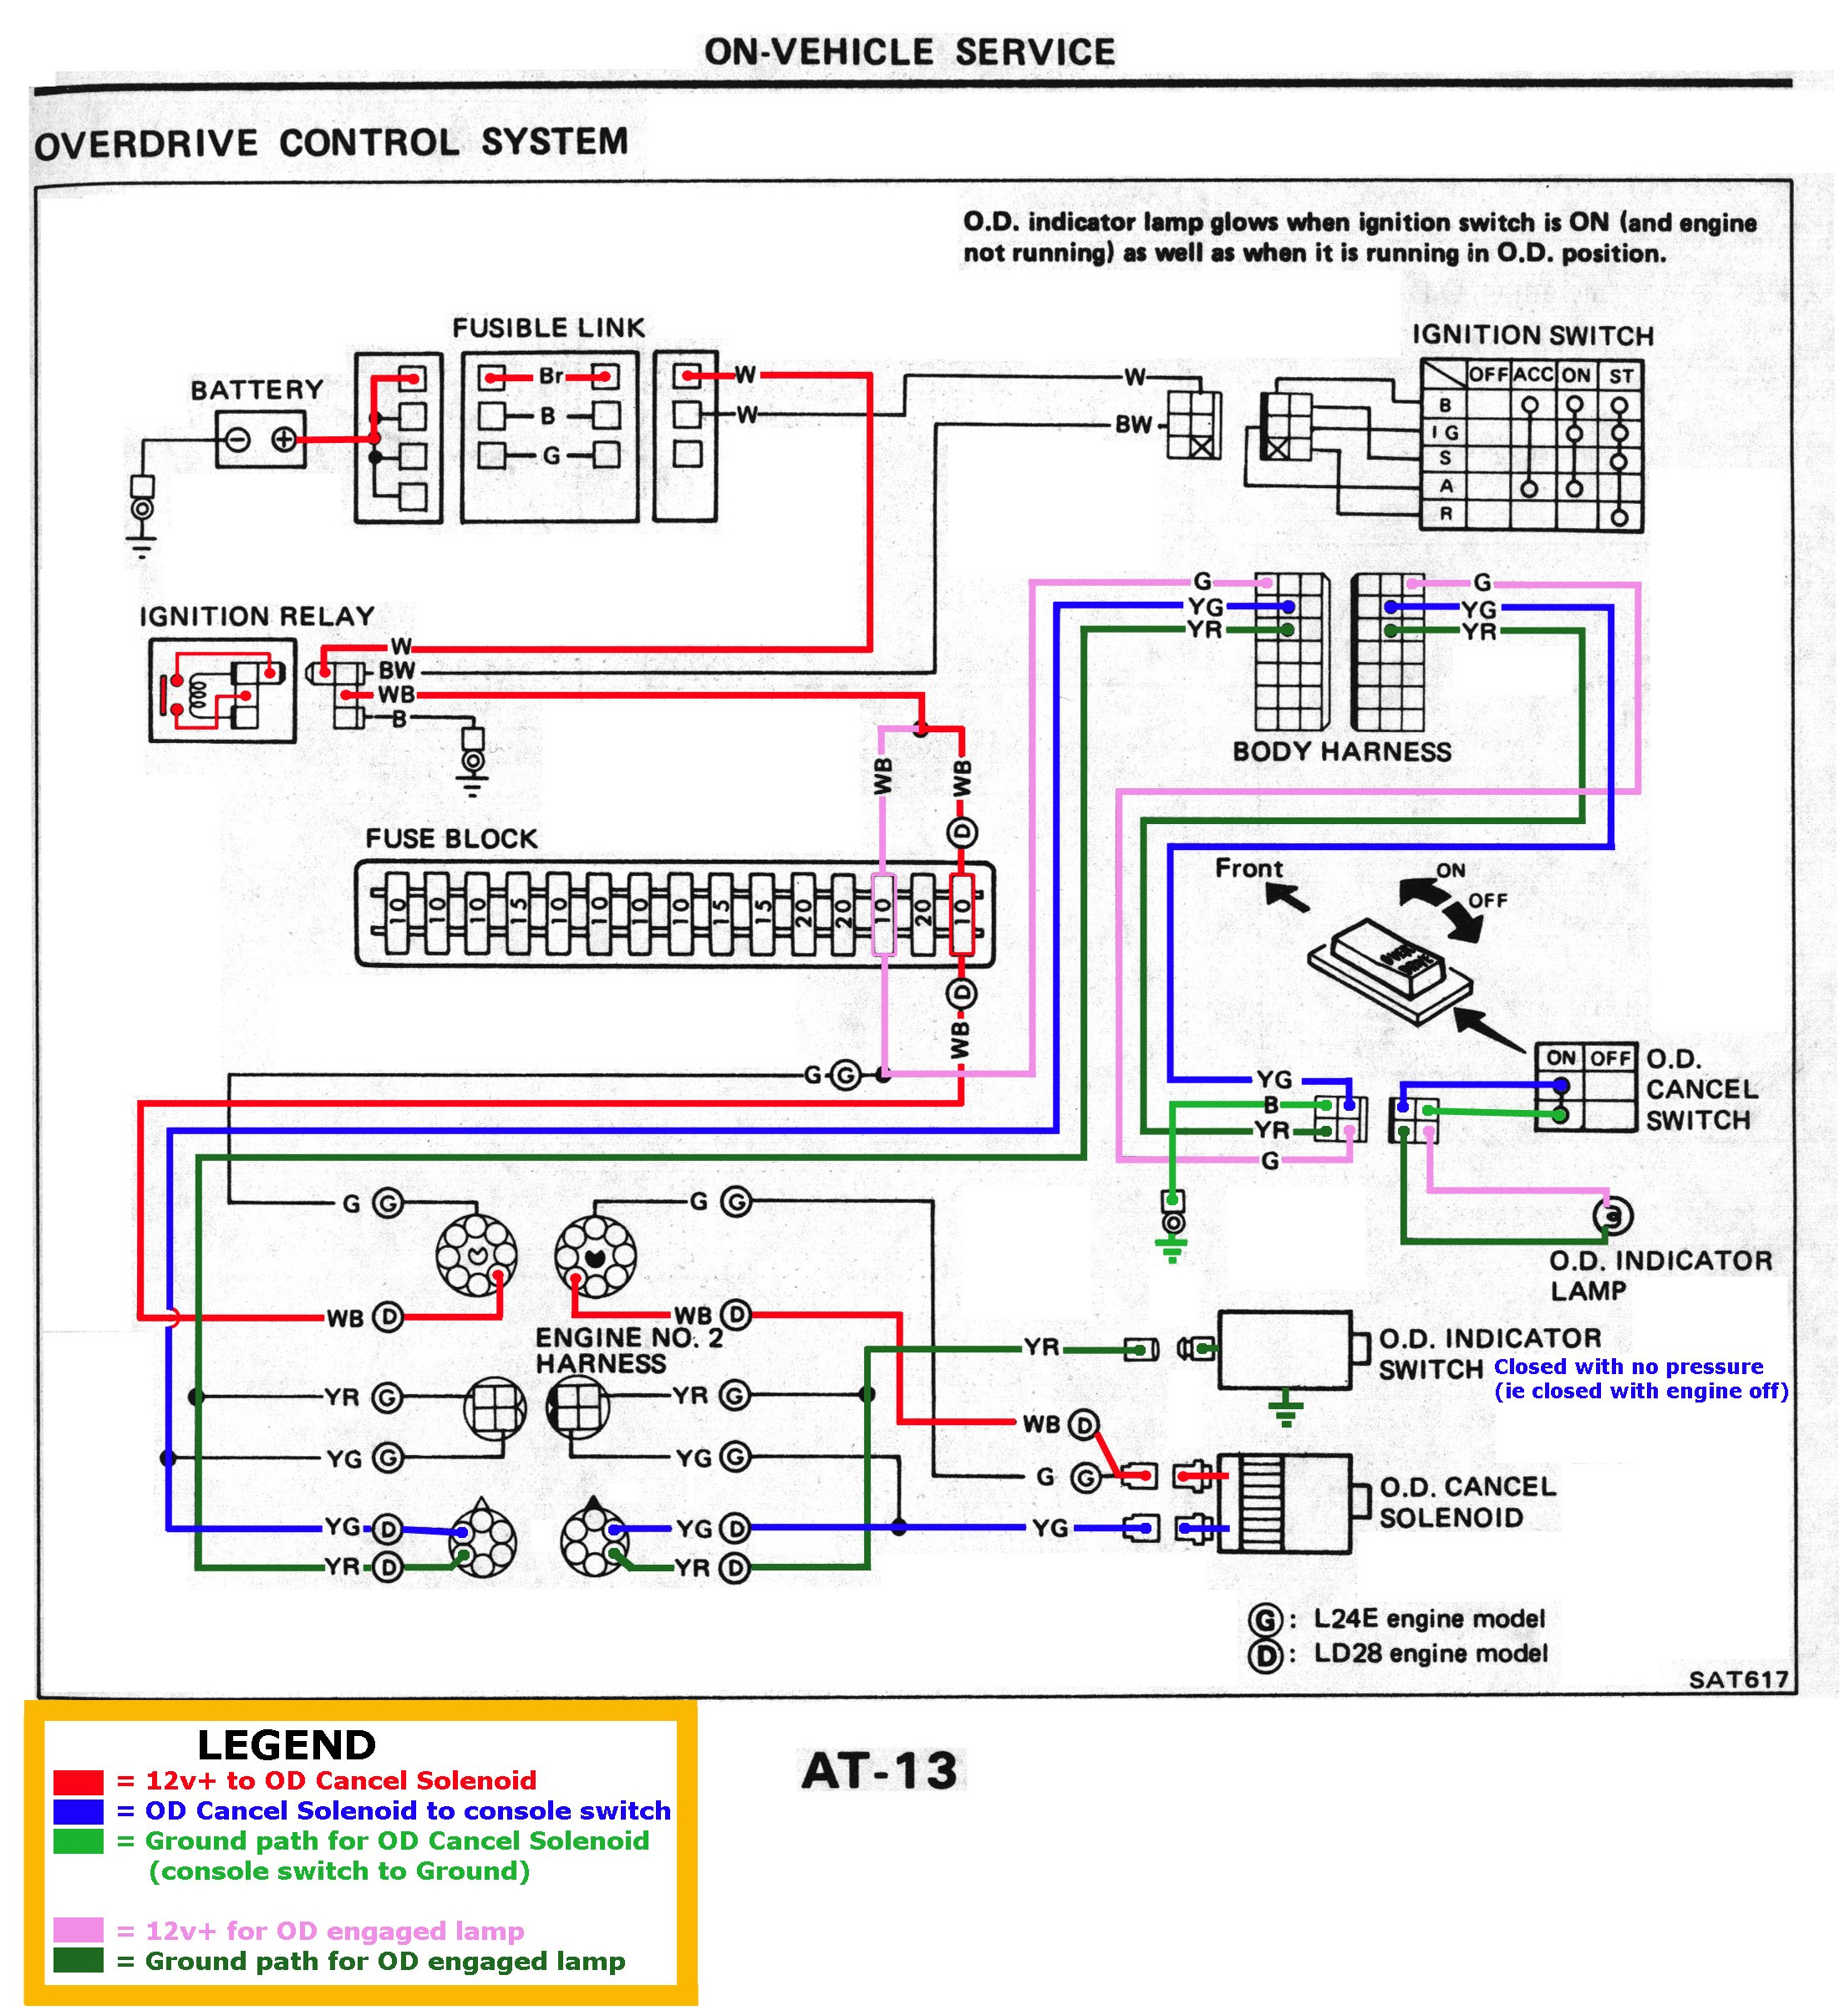 asco solenoid valve wiring diagram Collection-Gas solenoid Valve Wiring Diagram Inspirational Nissan sel forums • View topic L4n71b Od at 1983 84 8-i